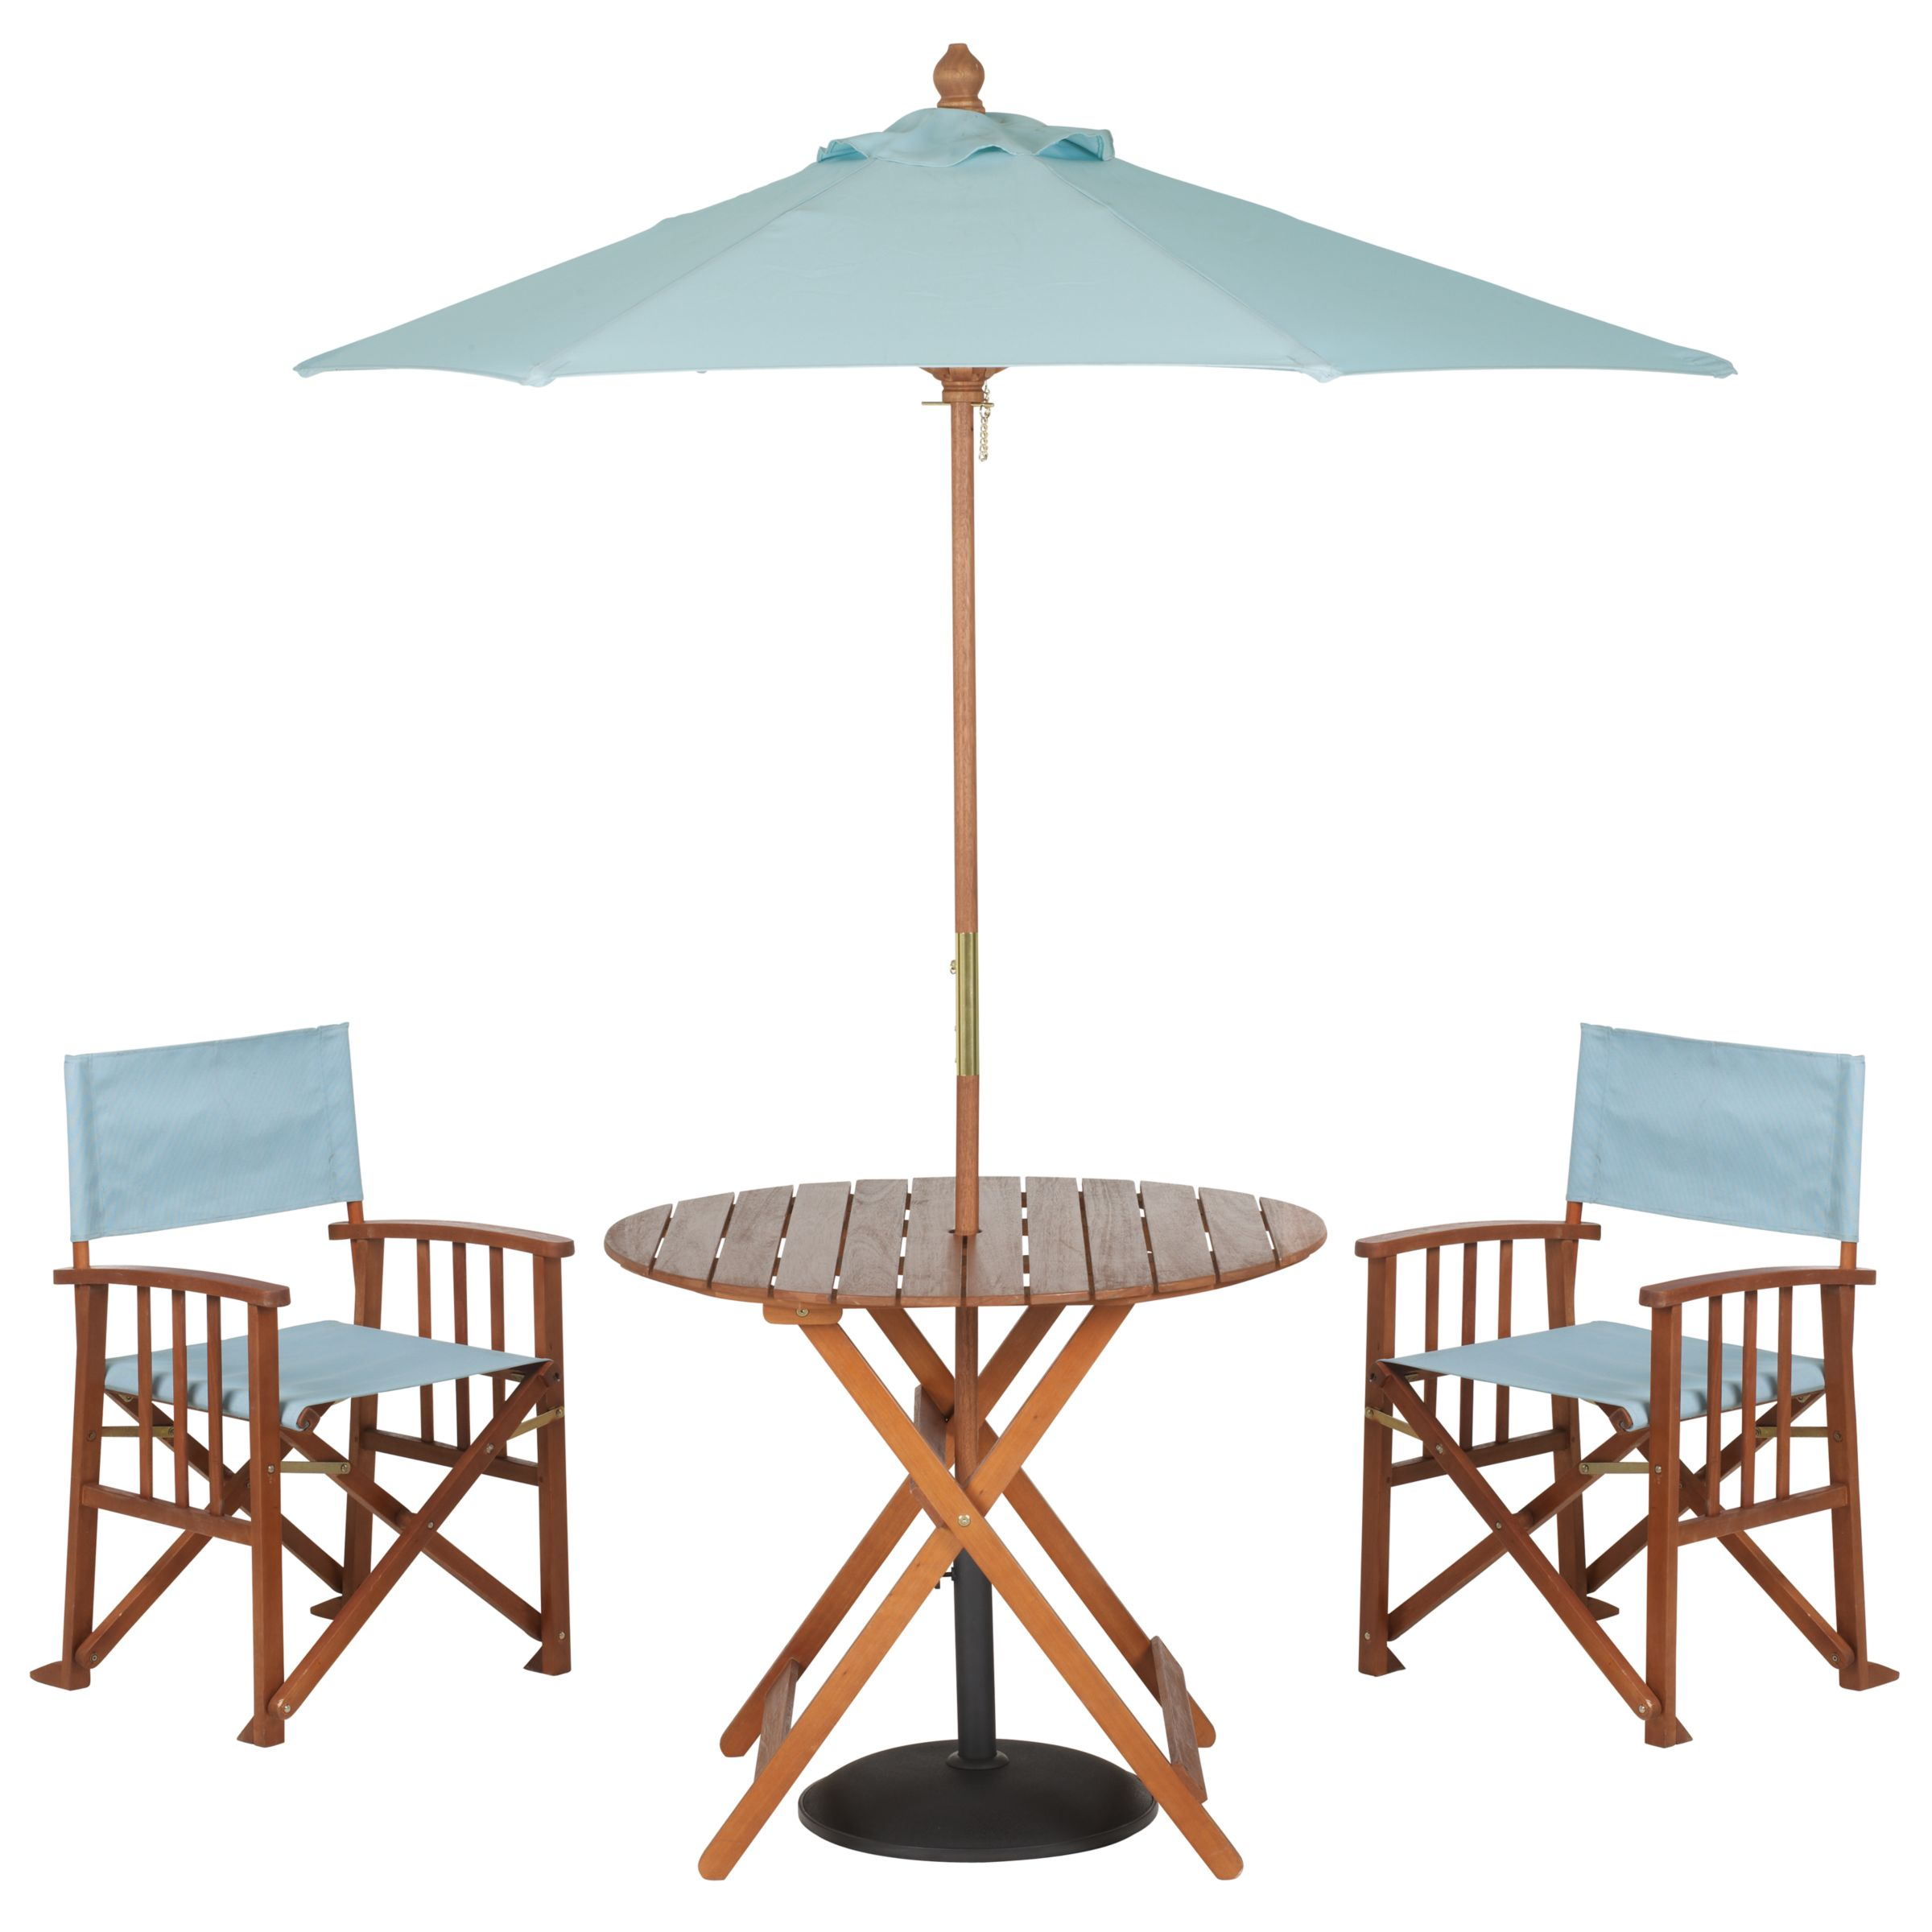 John Lewis Value Breeze Round Table and 2 Chairs Dining Set